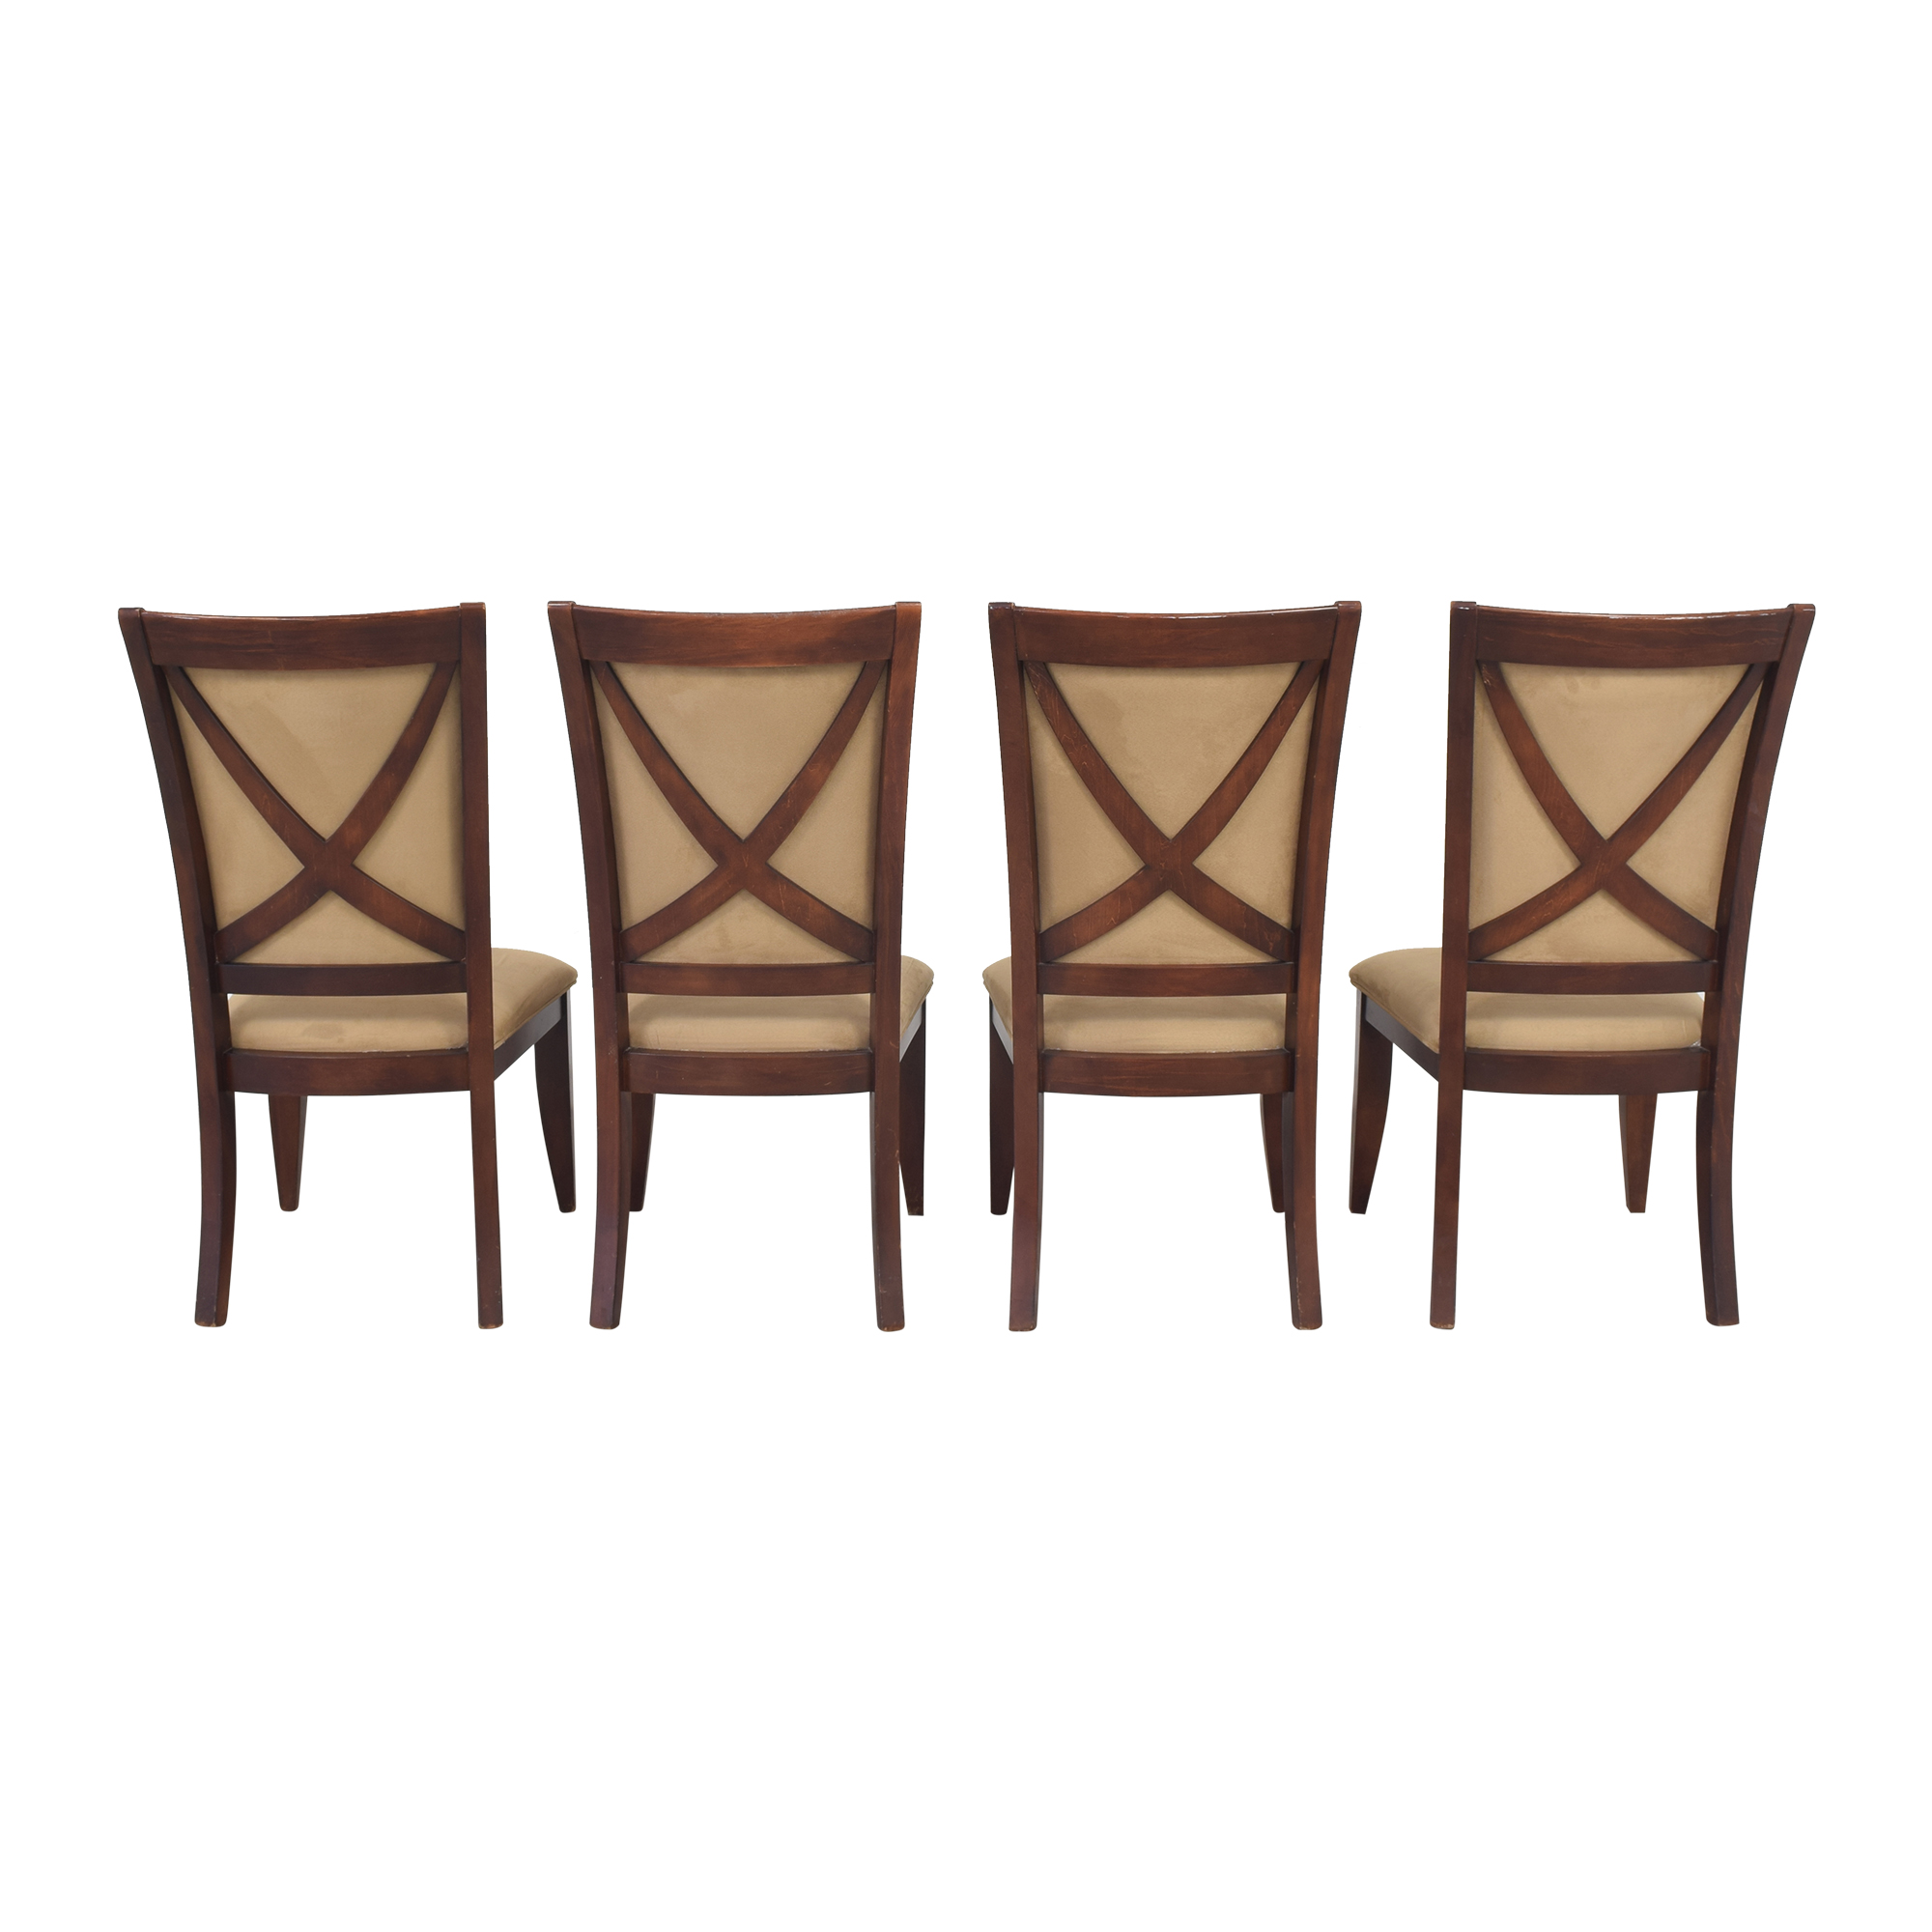 Legacy Classic Furniture Legacy Classic Upholstered Dining Chairs ma